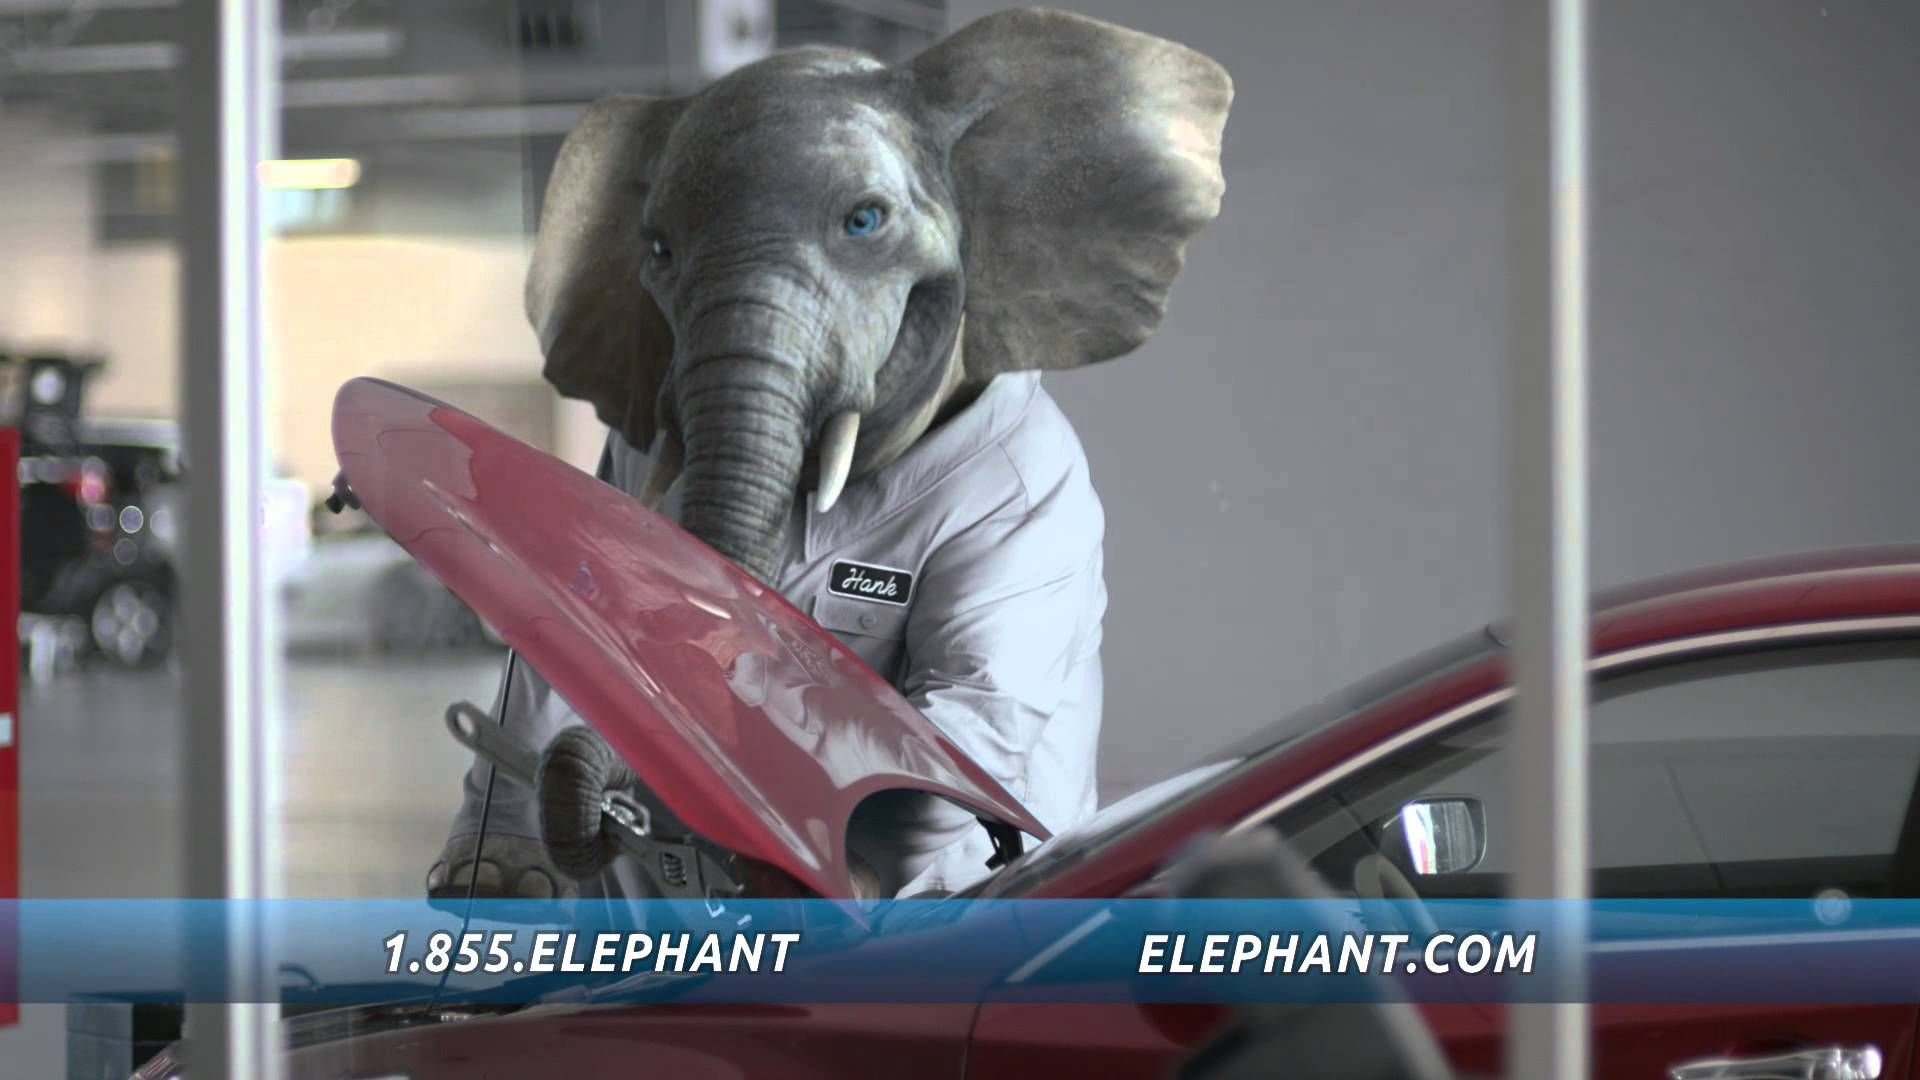 Elephant Auto Insurance Quote This Elephant Insurance Commercial Was Shot In The Allsteel Dallas